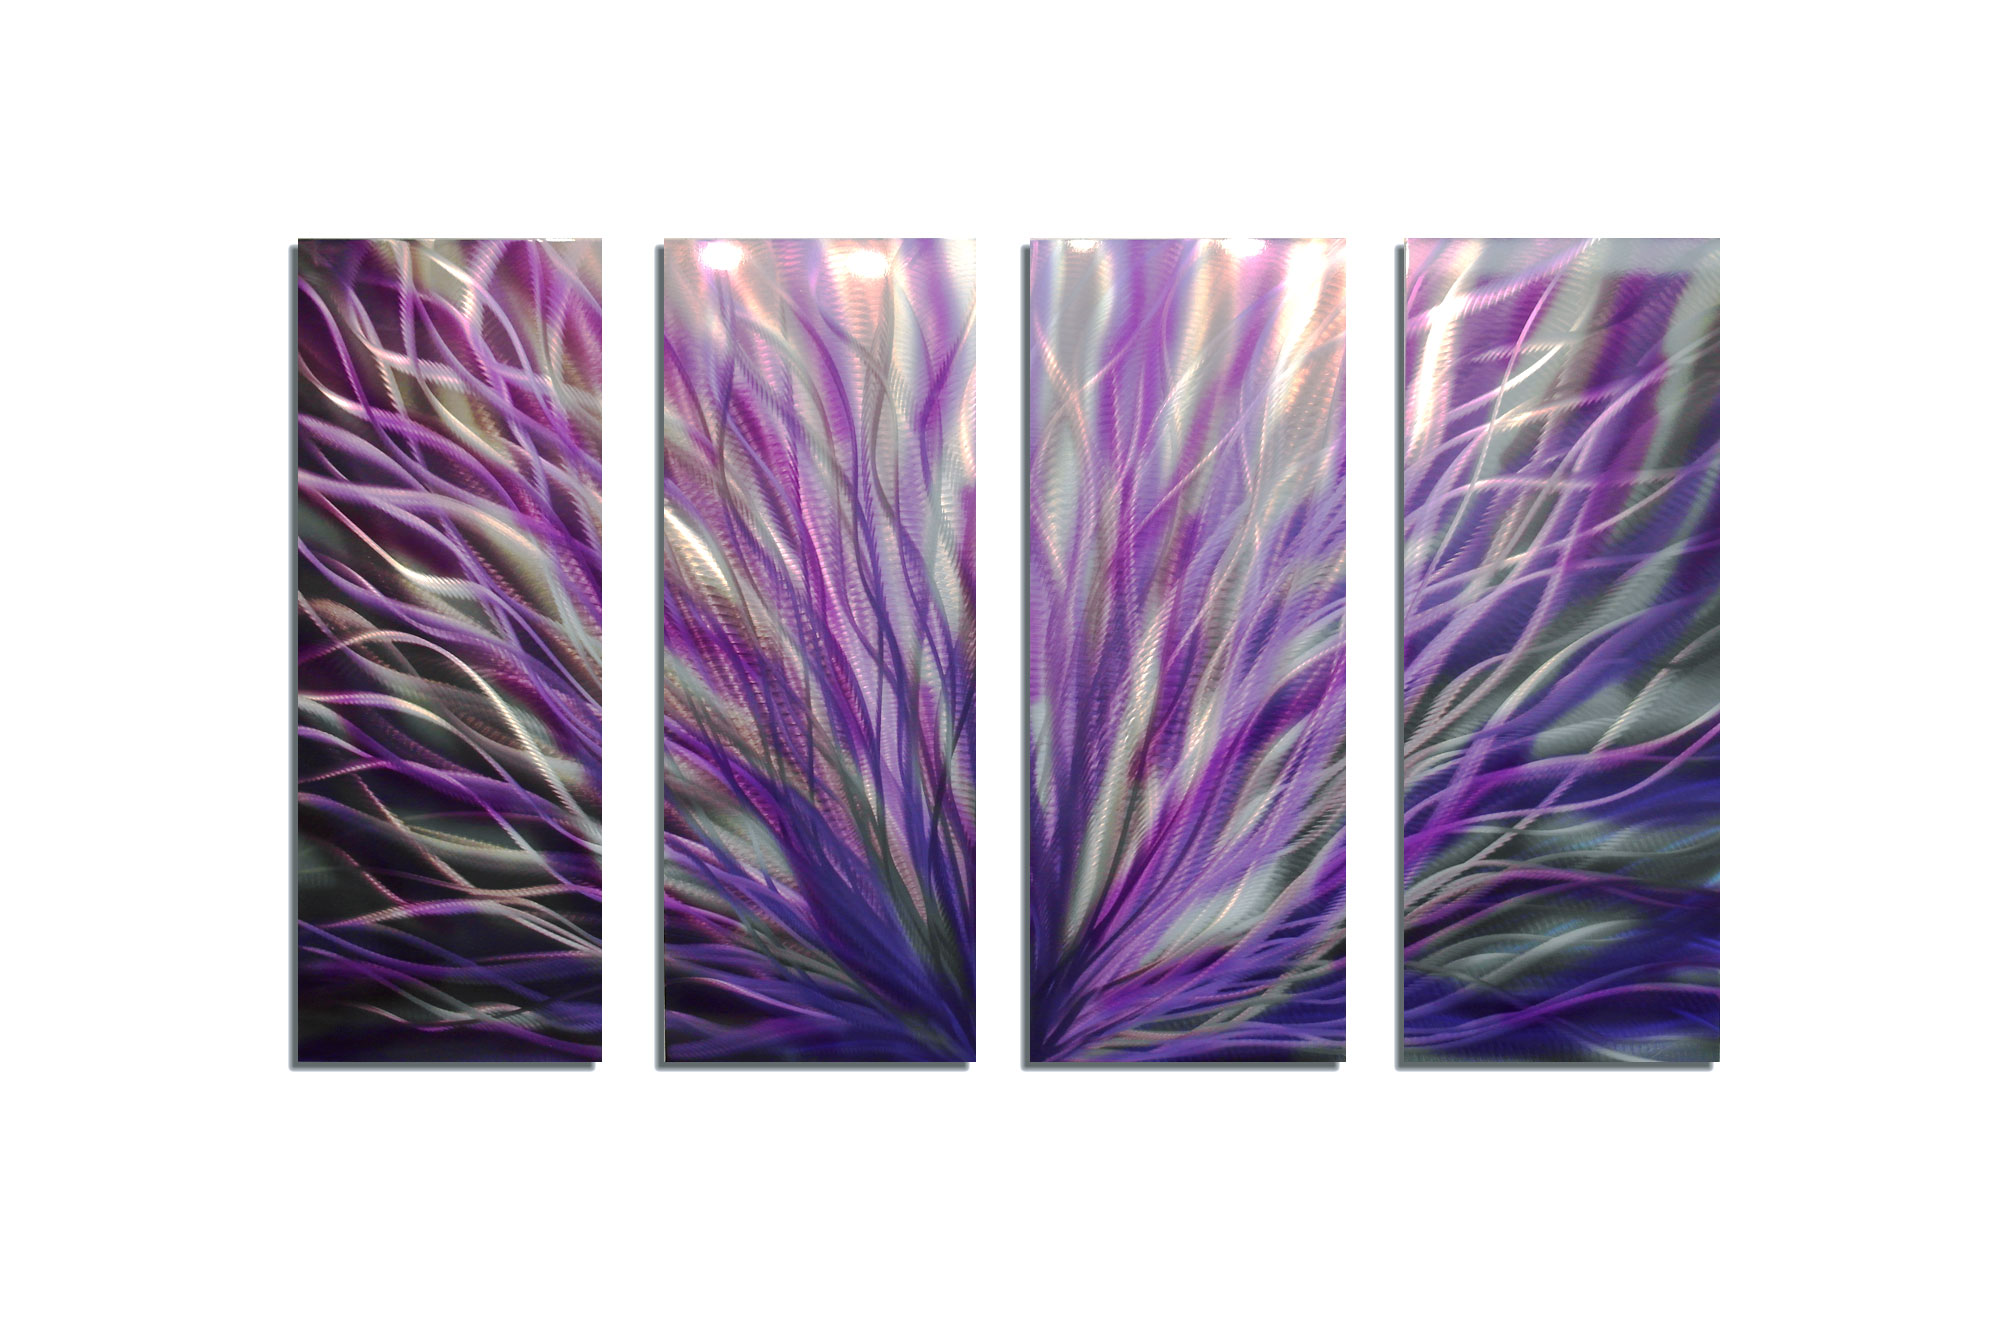 Purple Metal Wall Art radiance purple 36x63 - abstract metal wall art contemporary